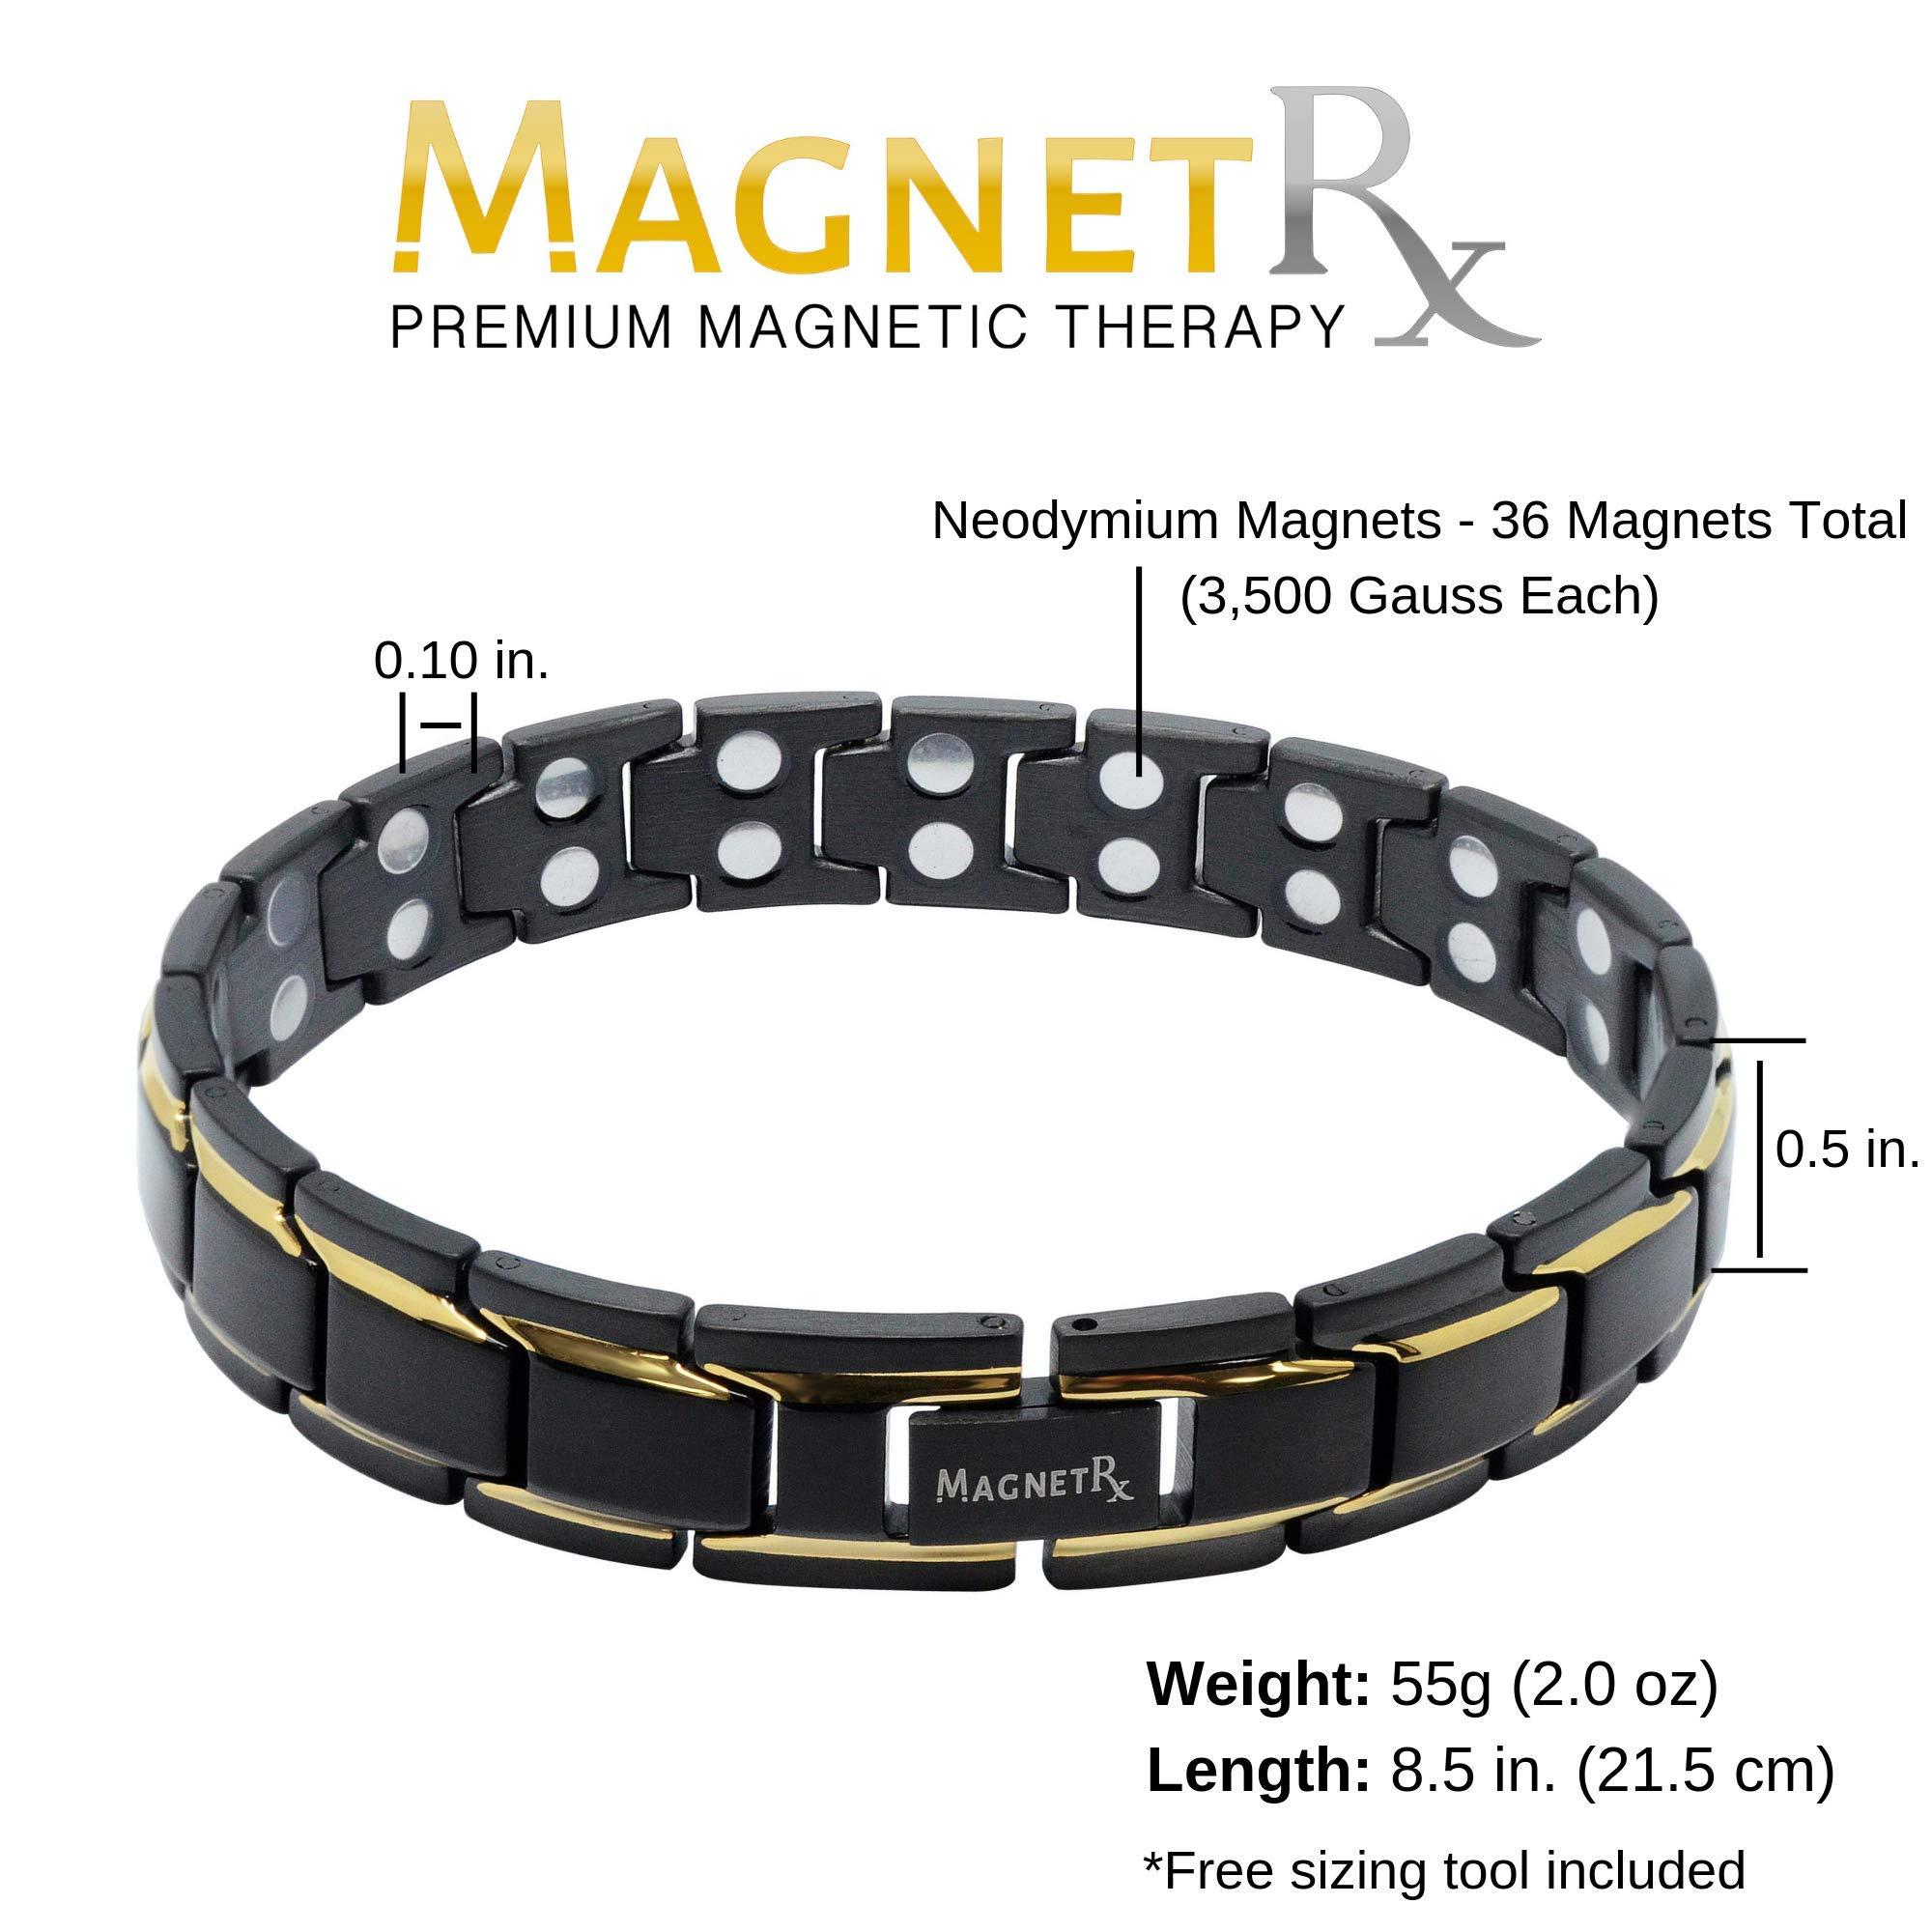 MagnetRX Ultra Strength Magnetic Therapy Bracelet Double Magnet Pain Relief for Arthritis and Carpal Tunnel by MagnetRX (Image #3)